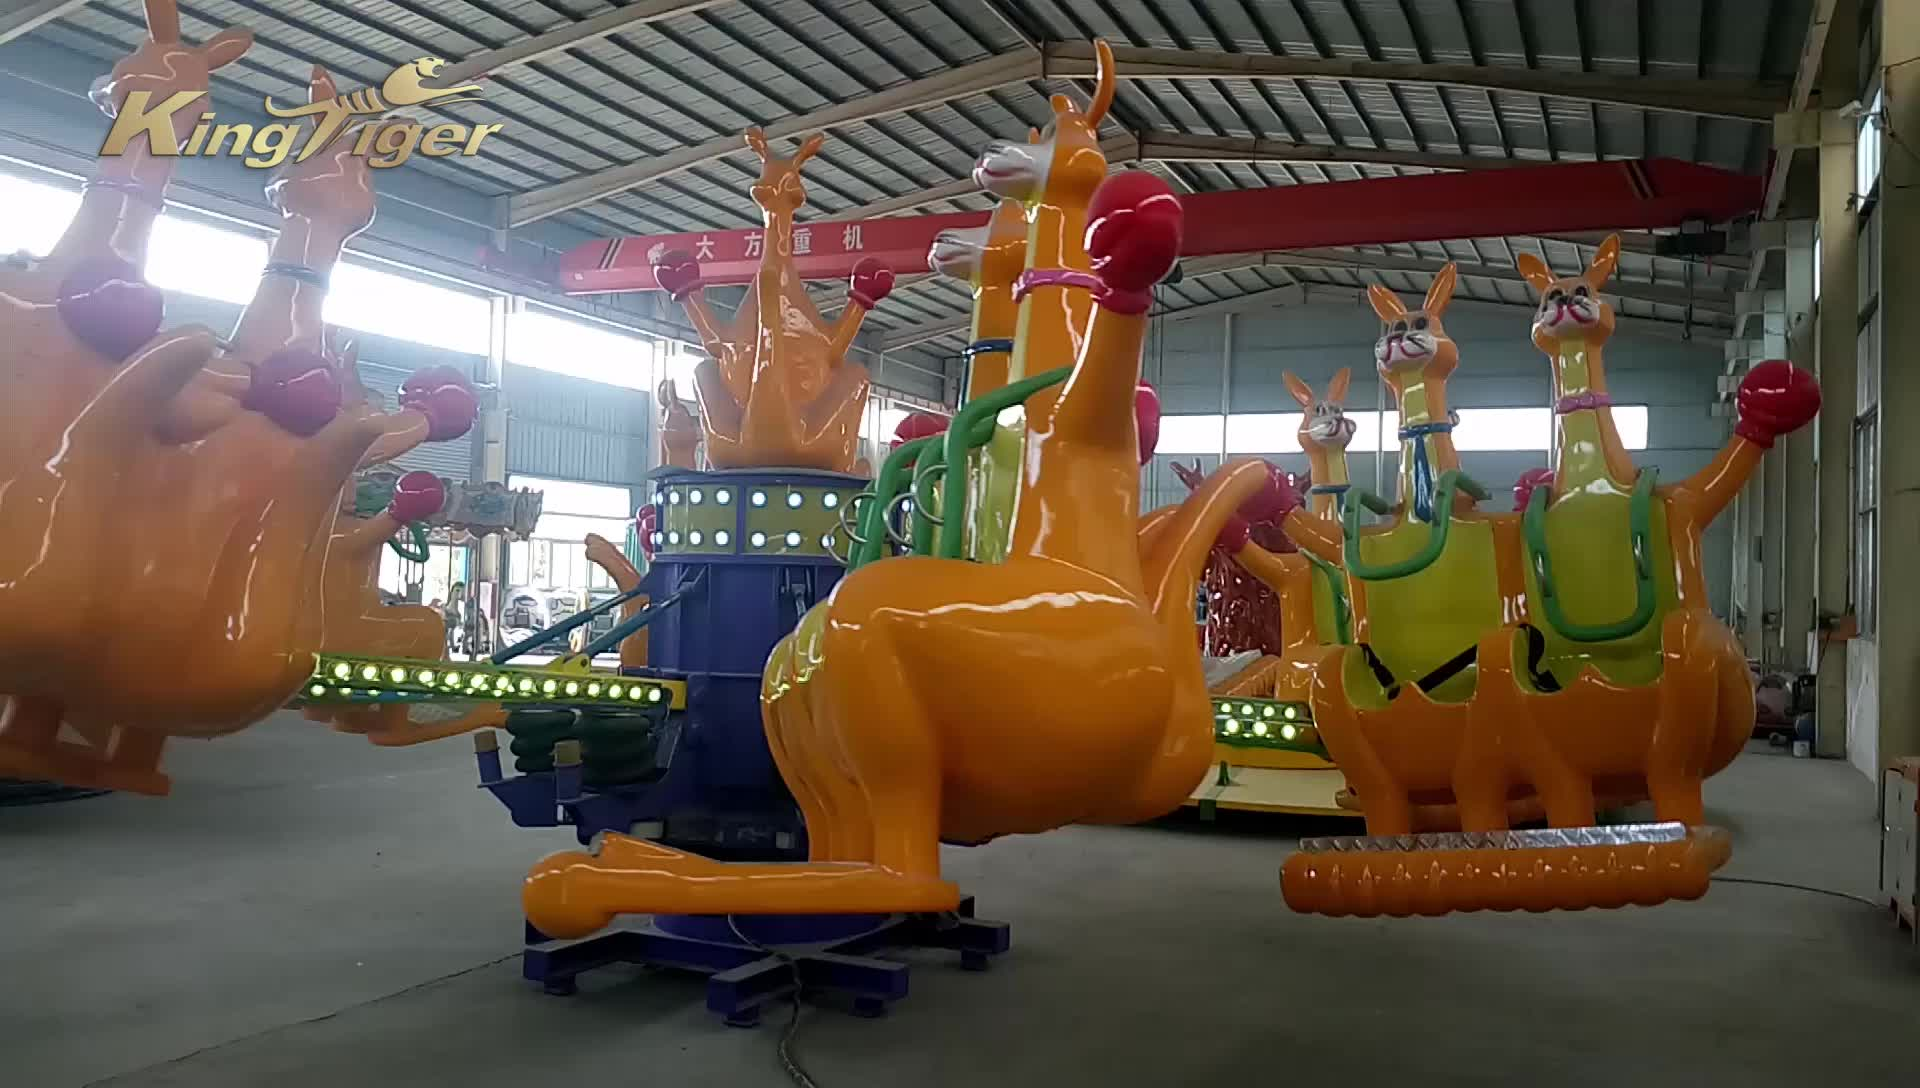 outdoor amusement ride playground jumping kangaroo manufacture